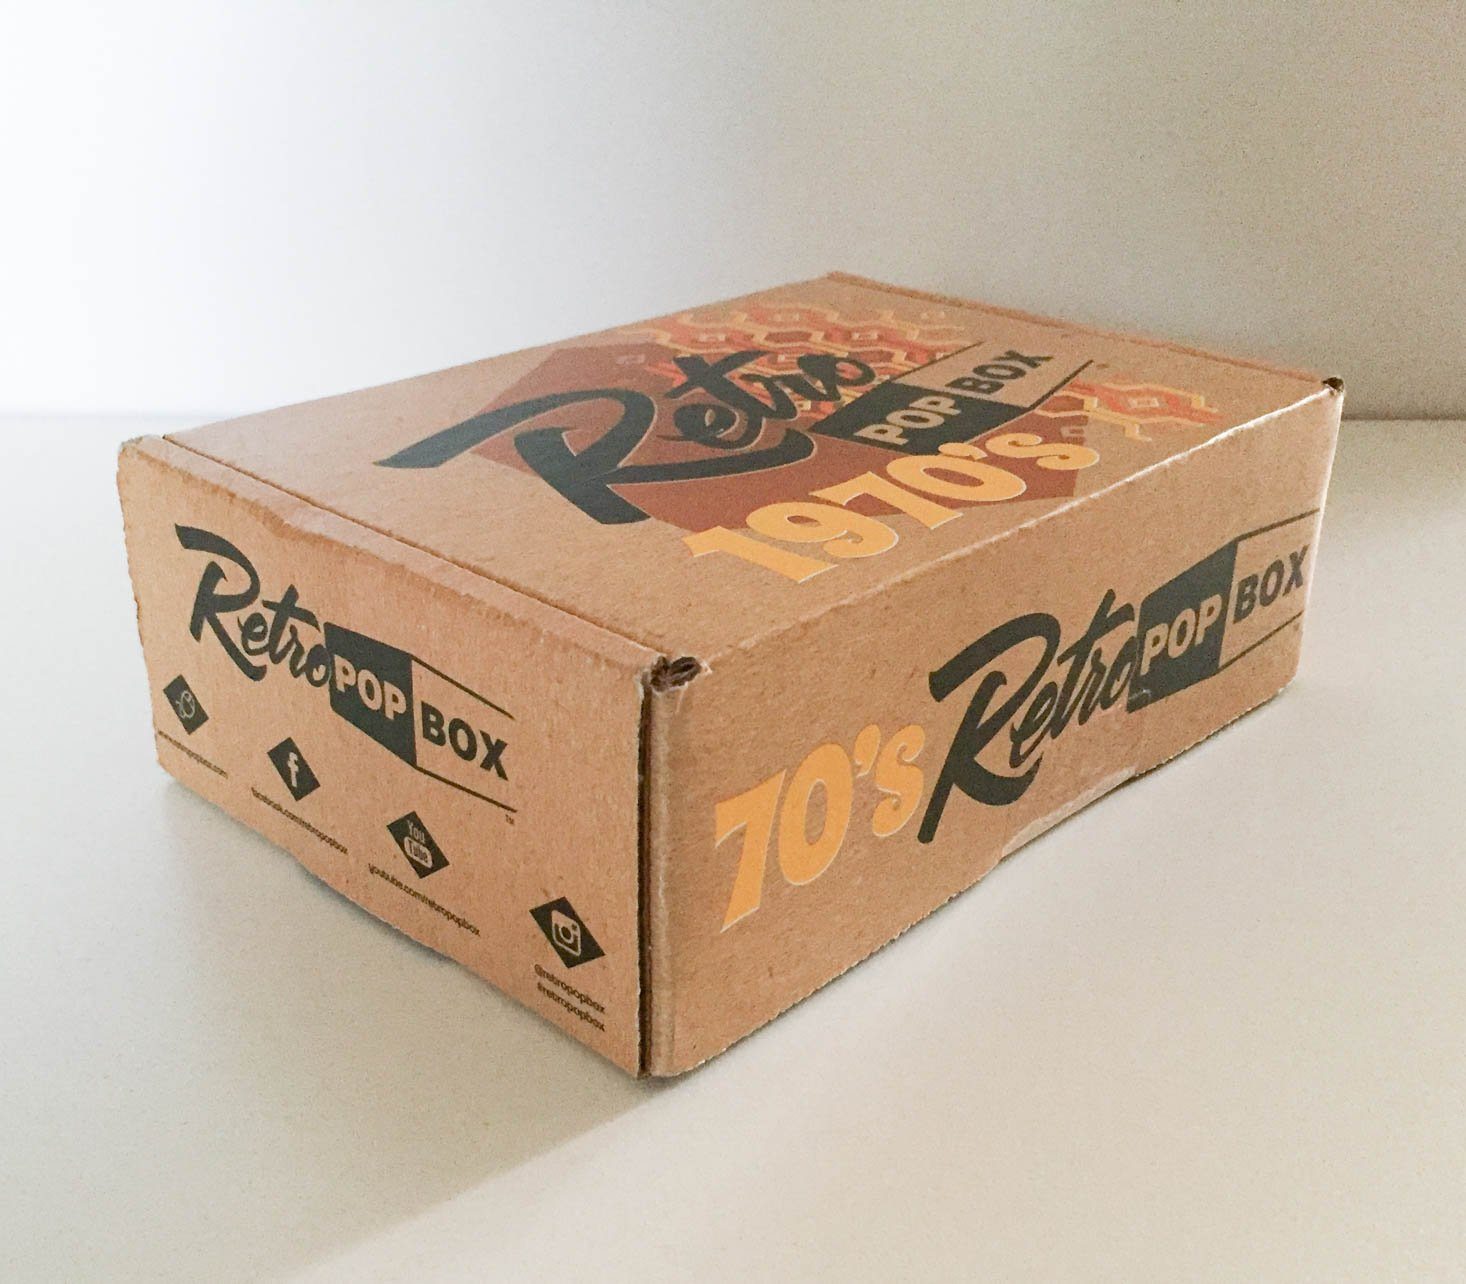 70s-retro-pop-box-december-2016-box